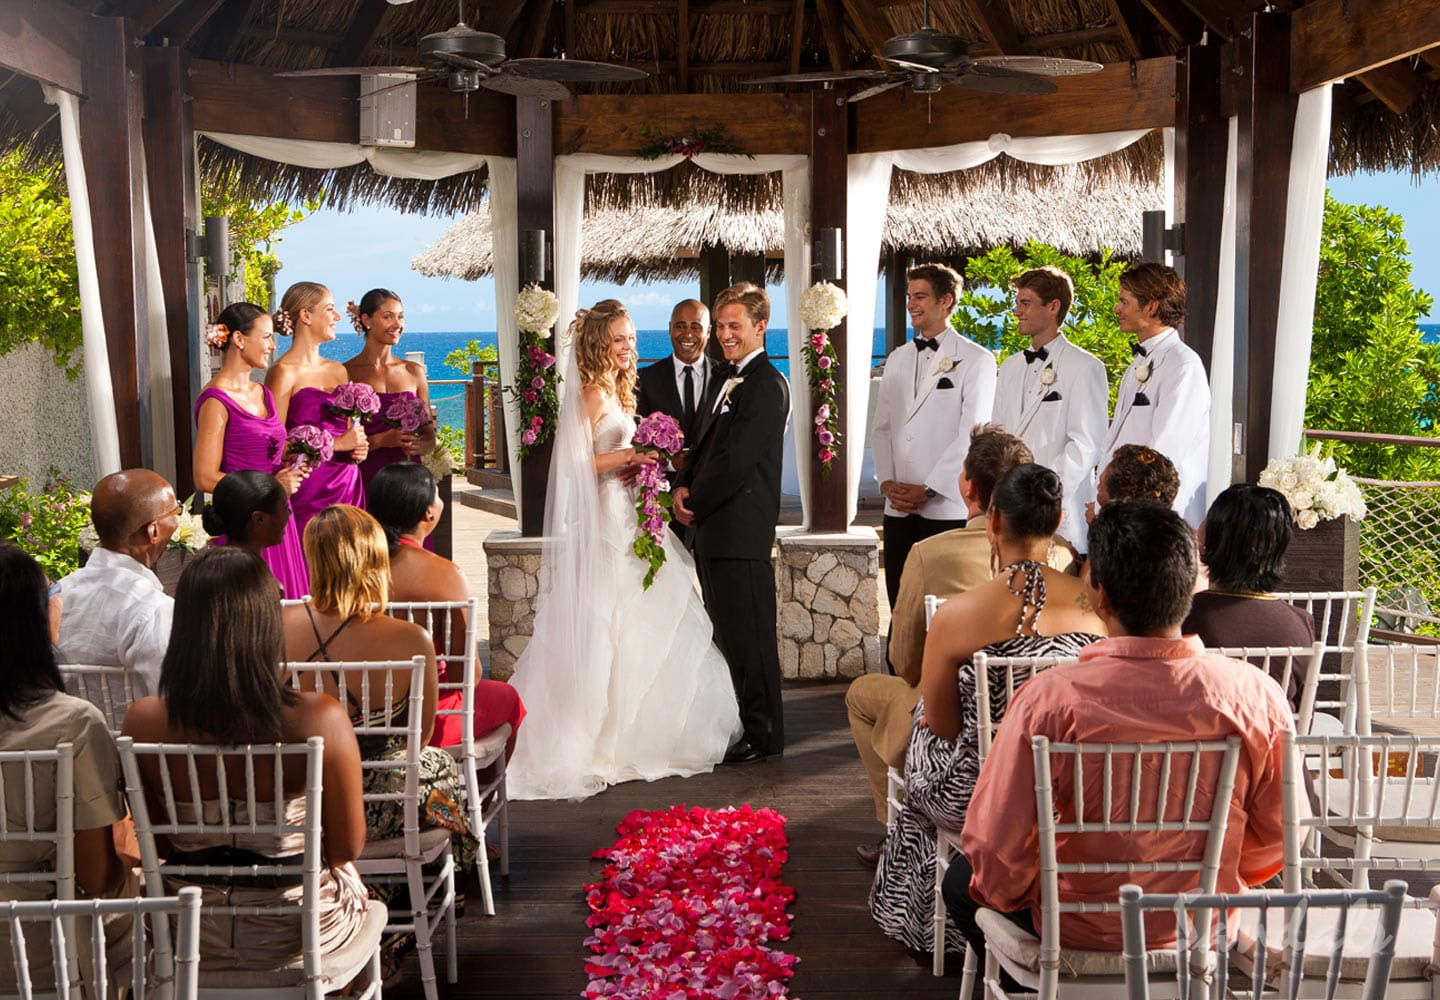 couple getting married in a wedding chapel on their all inclusive destination weddings in the Sandals Ochi Beach Resort